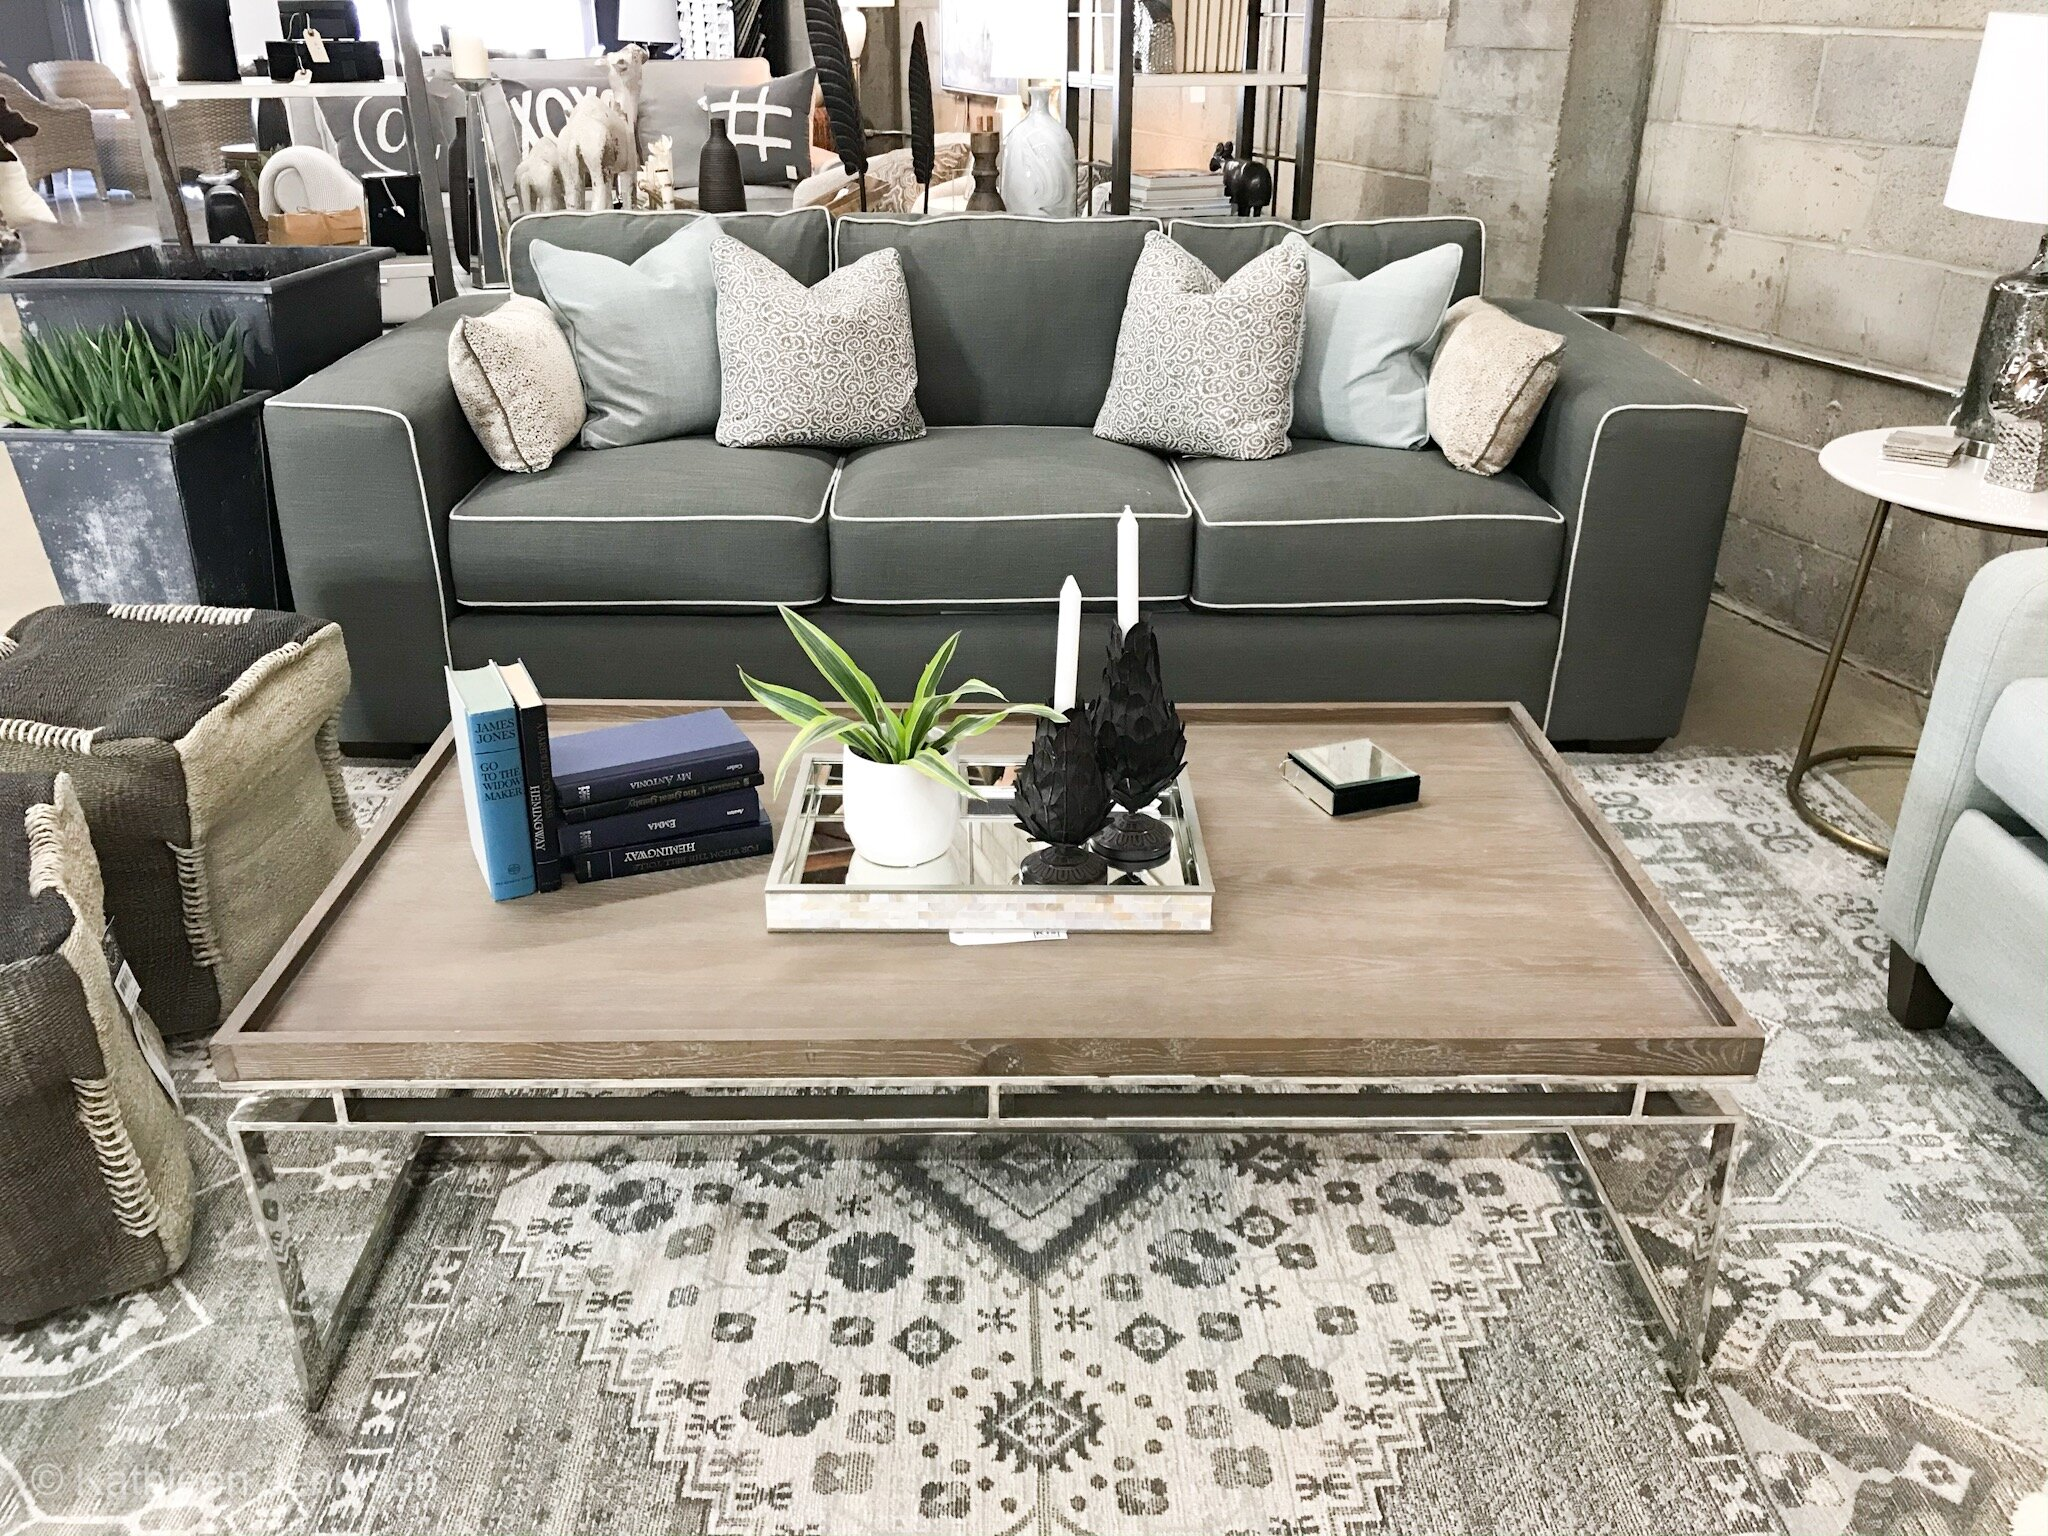 Affordable Luxury Furniture Opens